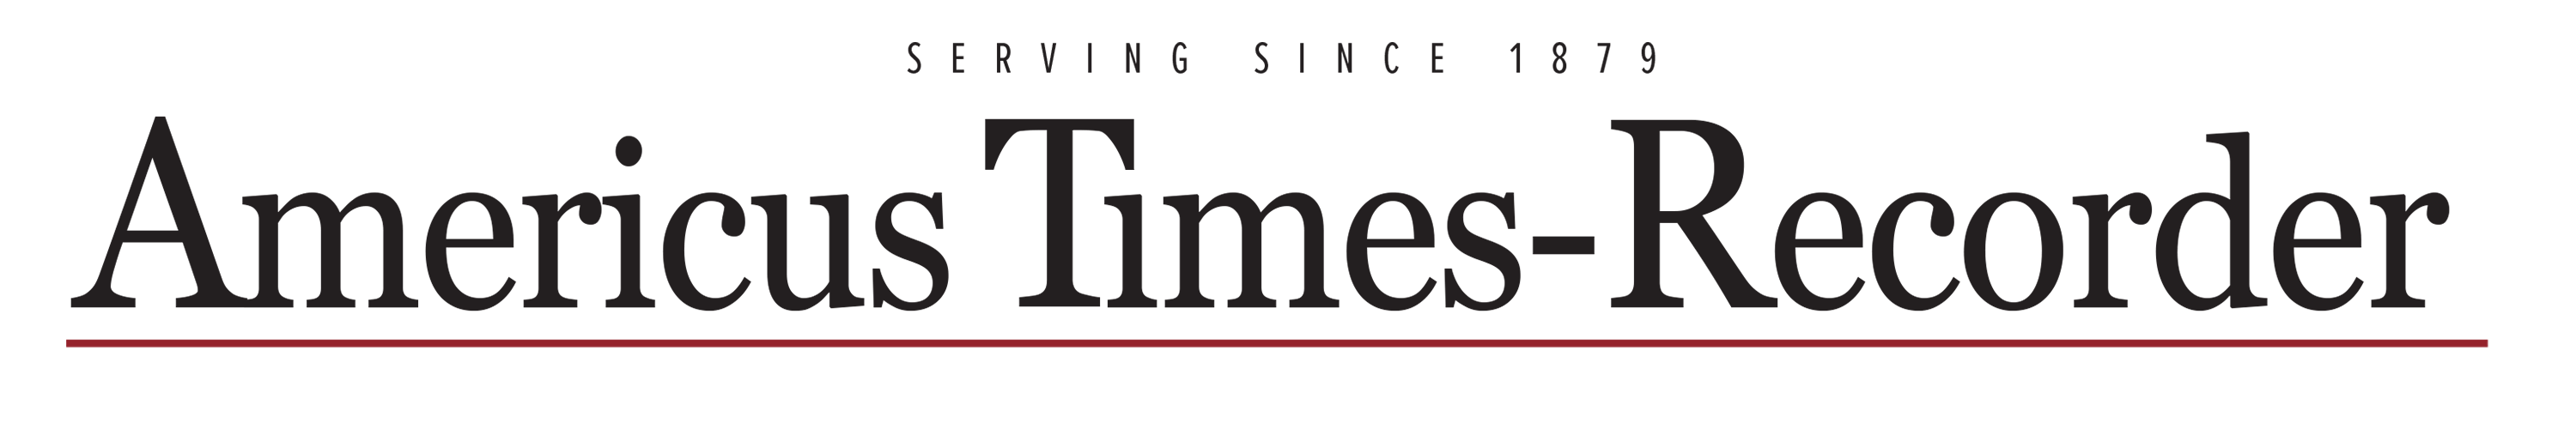 Americus Times-Recorder